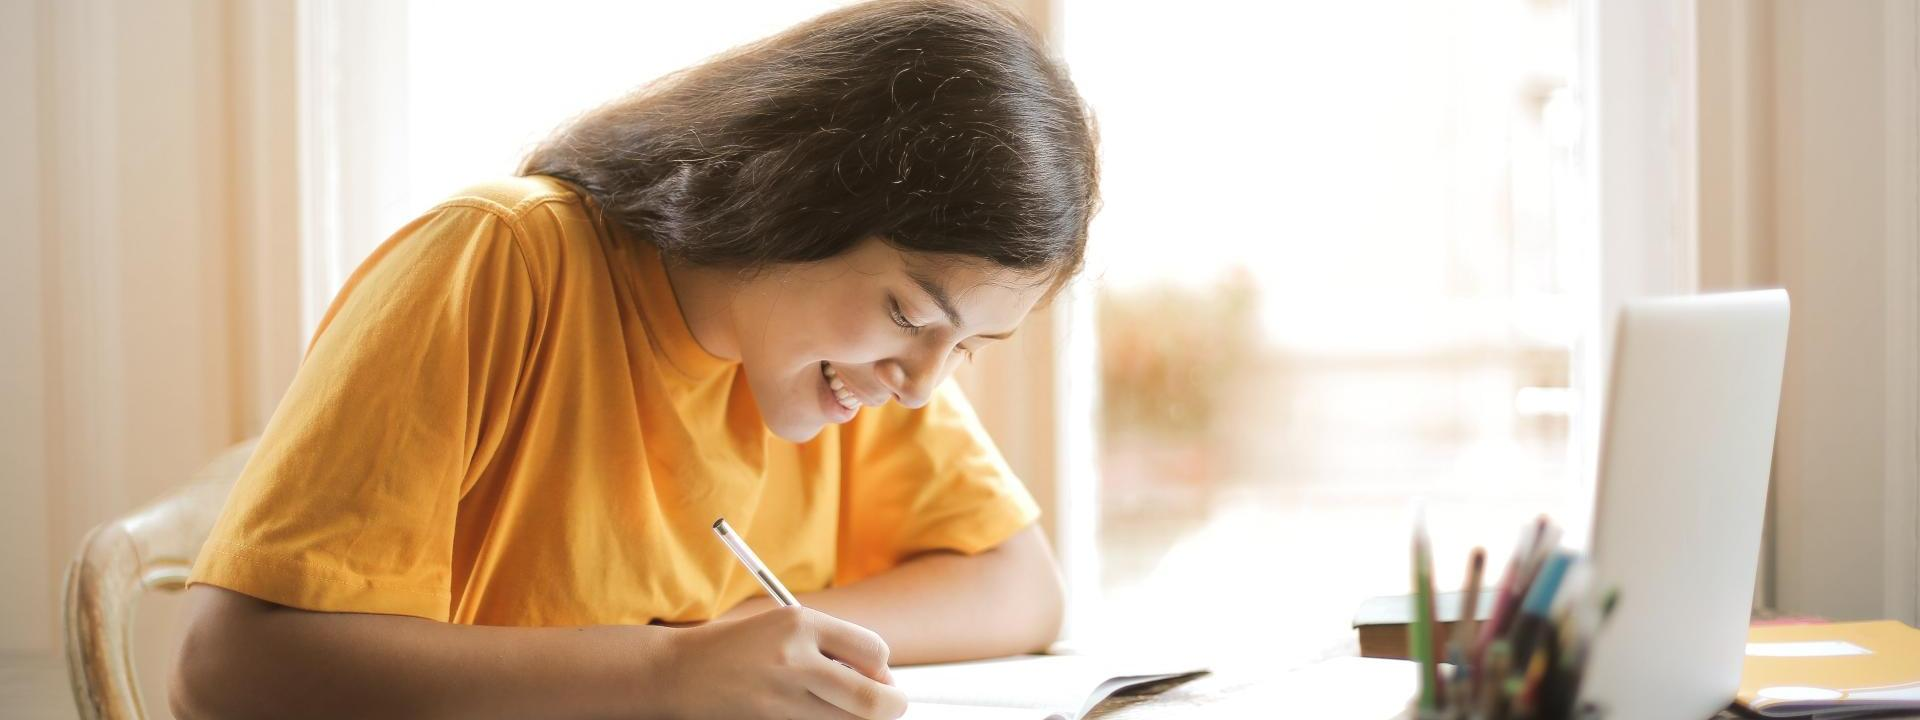 Student sitting at computer filling out paperwork